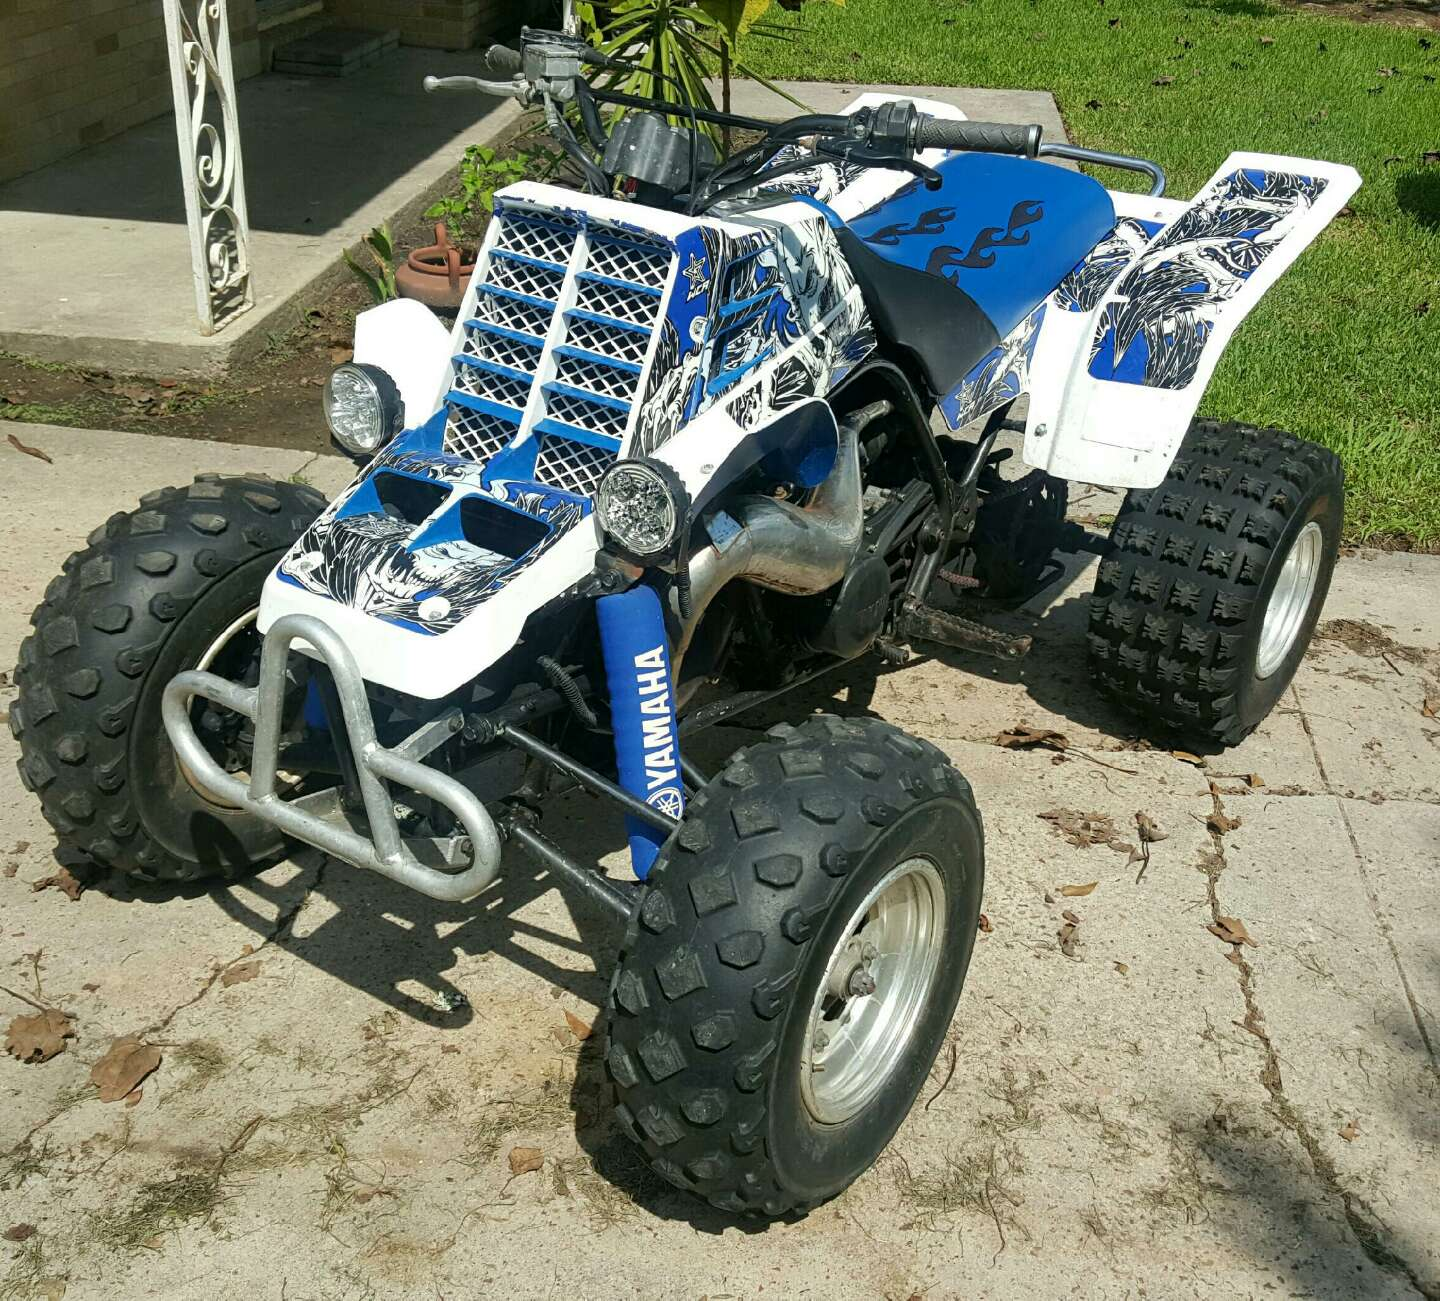 2004 yamaha banshee yz 350 for sale in baytown tx 5miles buy and sell. Black Bedroom Furniture Sets. Home Design Ideas